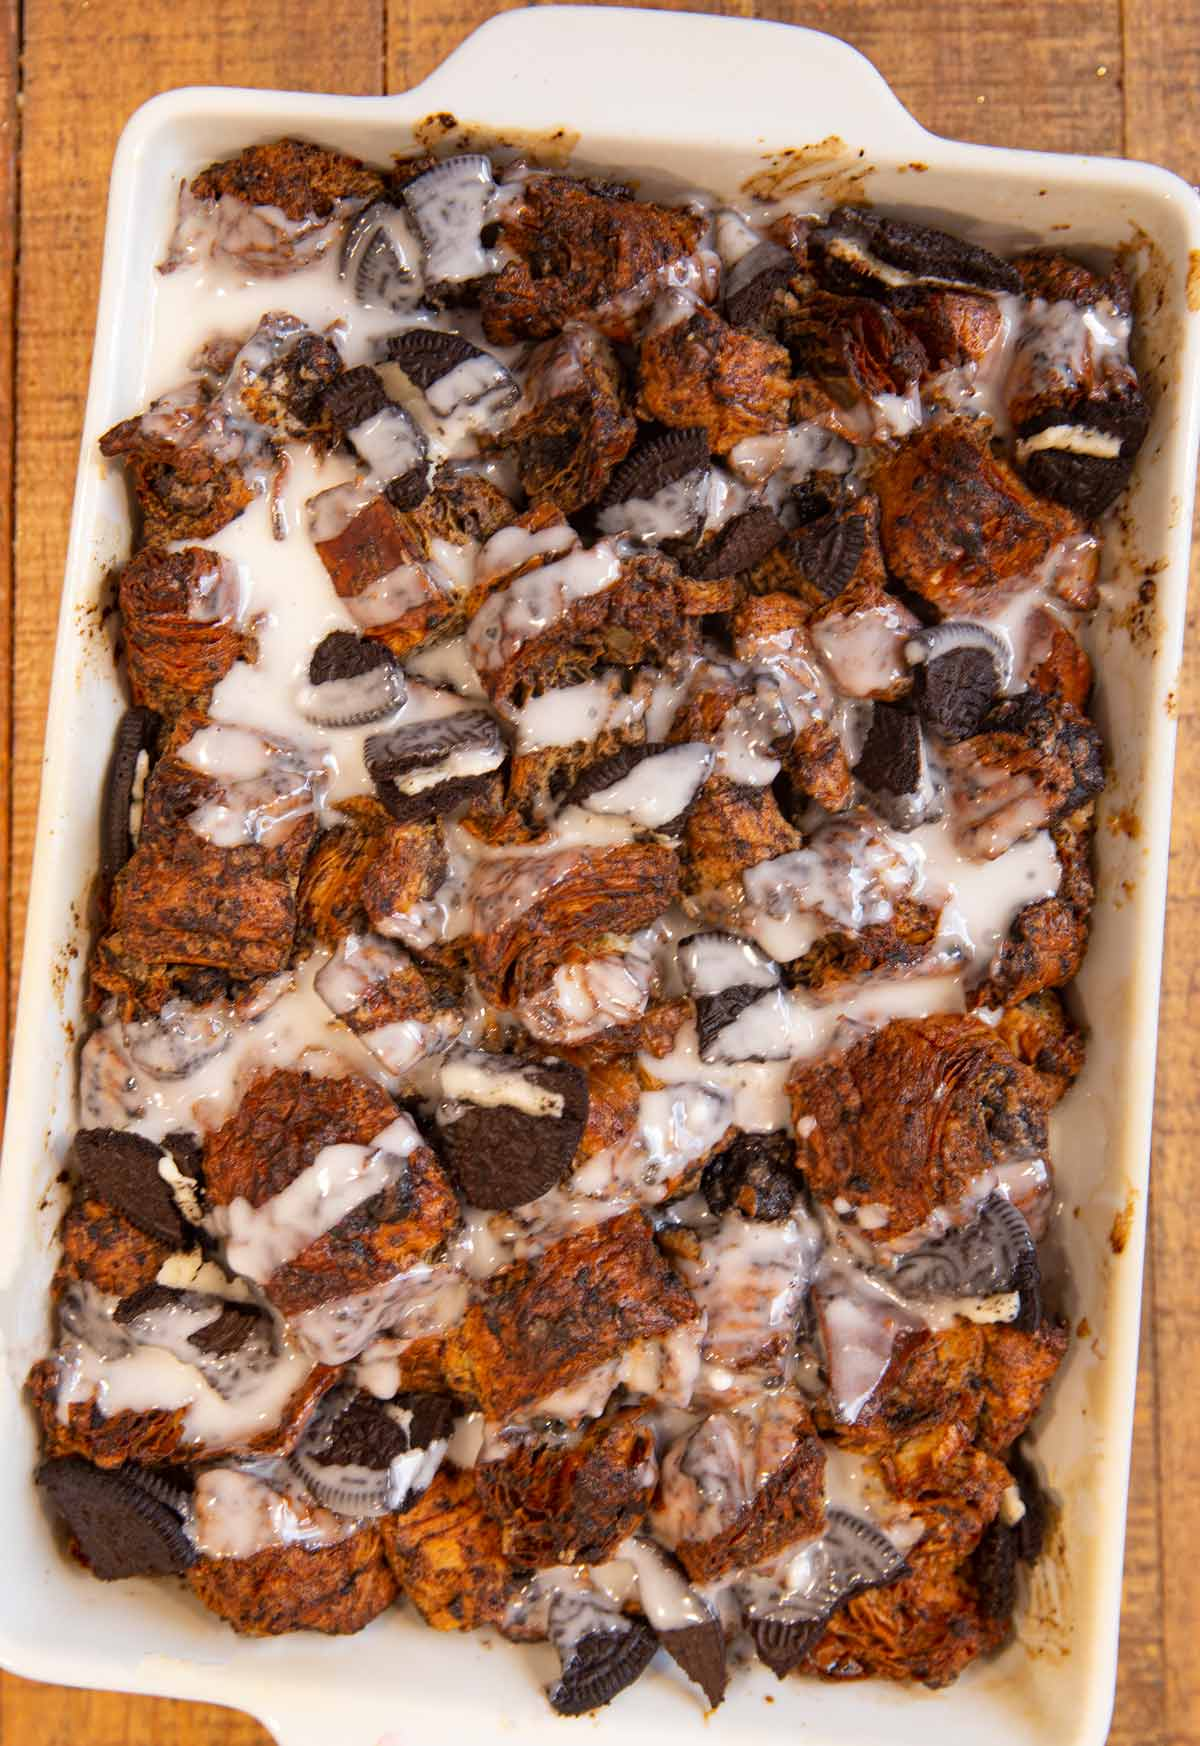 Oreo Croissant Bread Pudding in baking dish after baking